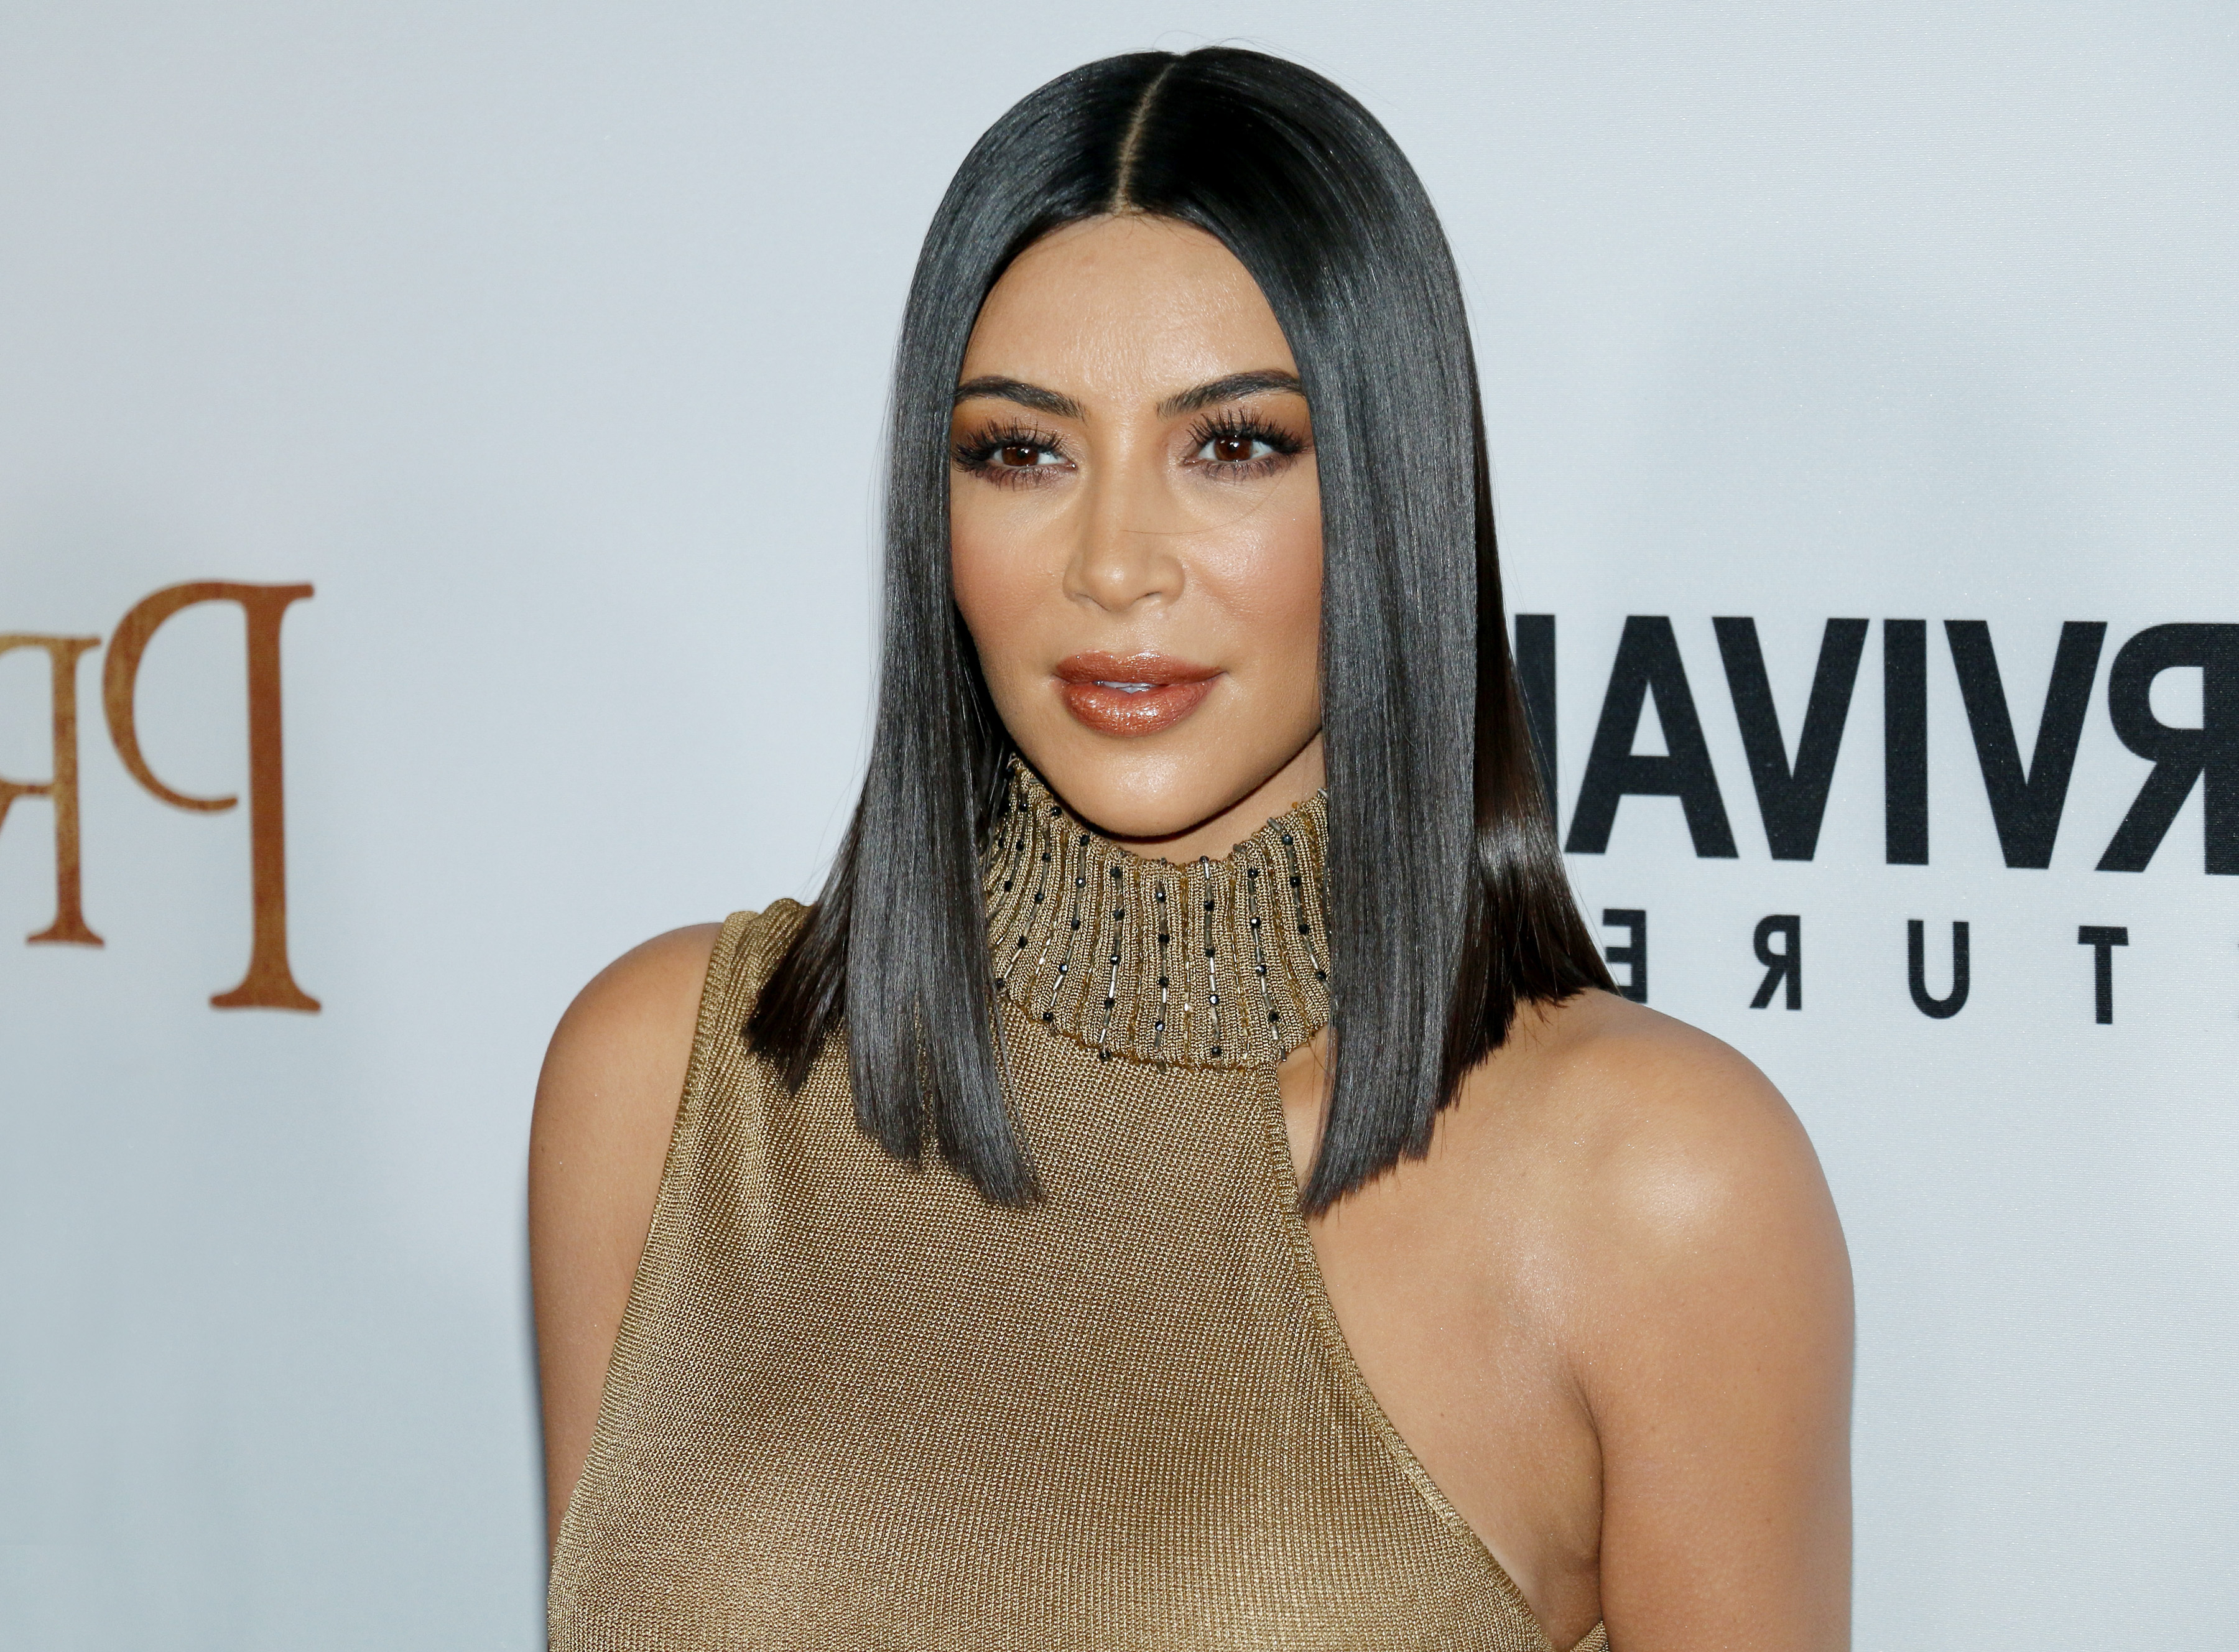 Great Hair Here! Kim Kardashian – Sleek Straight Black Lob In Most Recent Straight And Sleek Hairstyles (View 6 of 20)